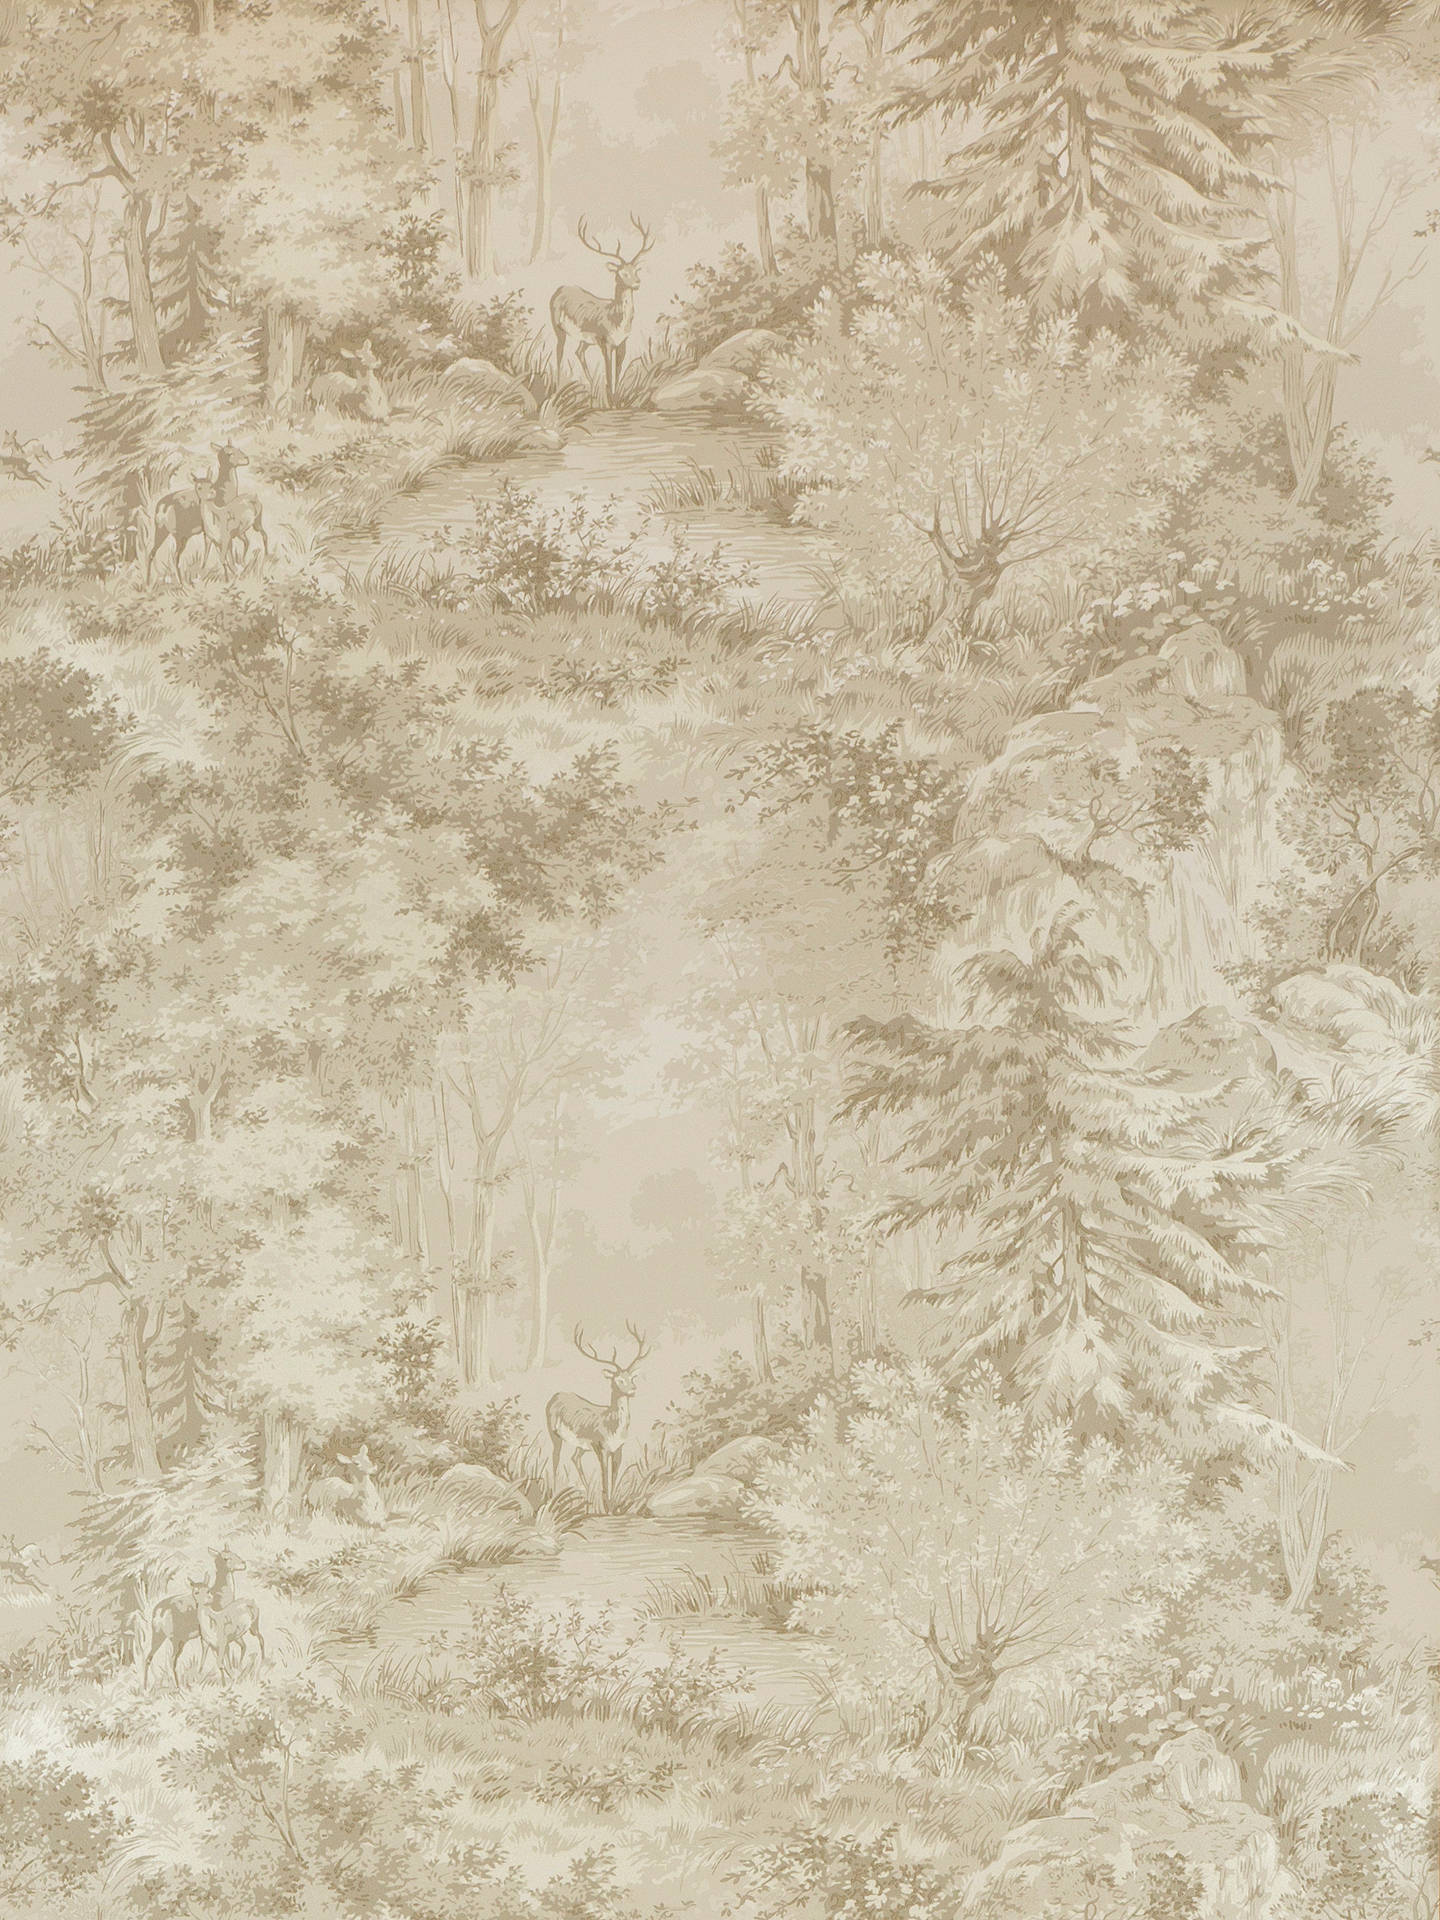 Buy Mulberry Home Torridon Paste the Wall Wallpaper, Sand, FG076.N102 Online at johnlewis.com